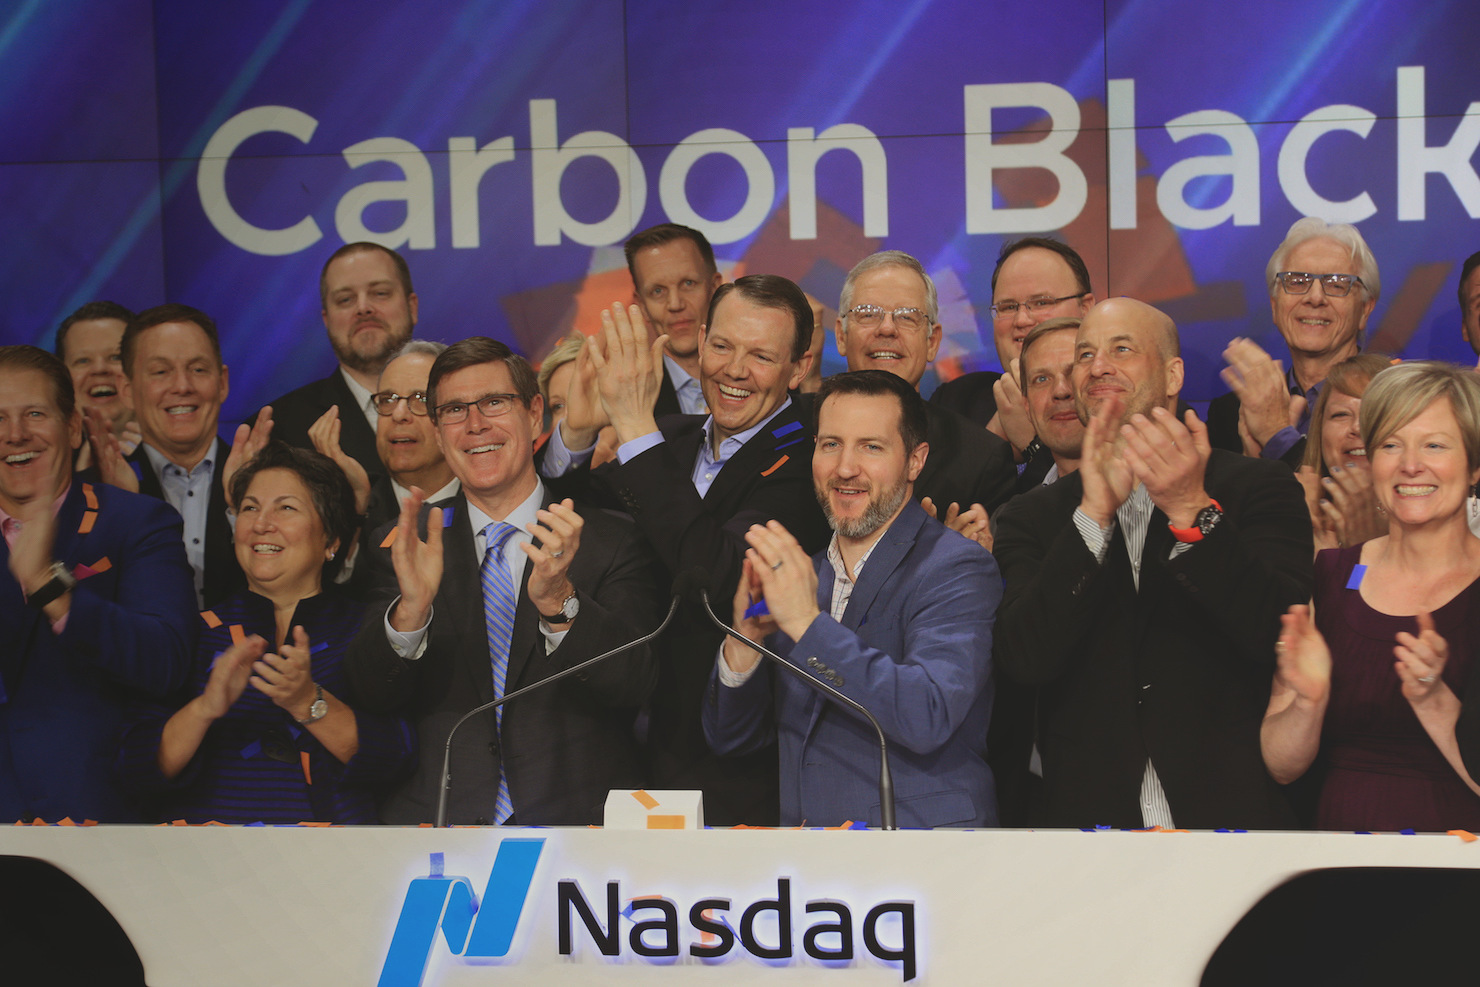 Carbon Black IPOs at Over $1.2B<br><br></a><strong>READ THE STORY →</strong>